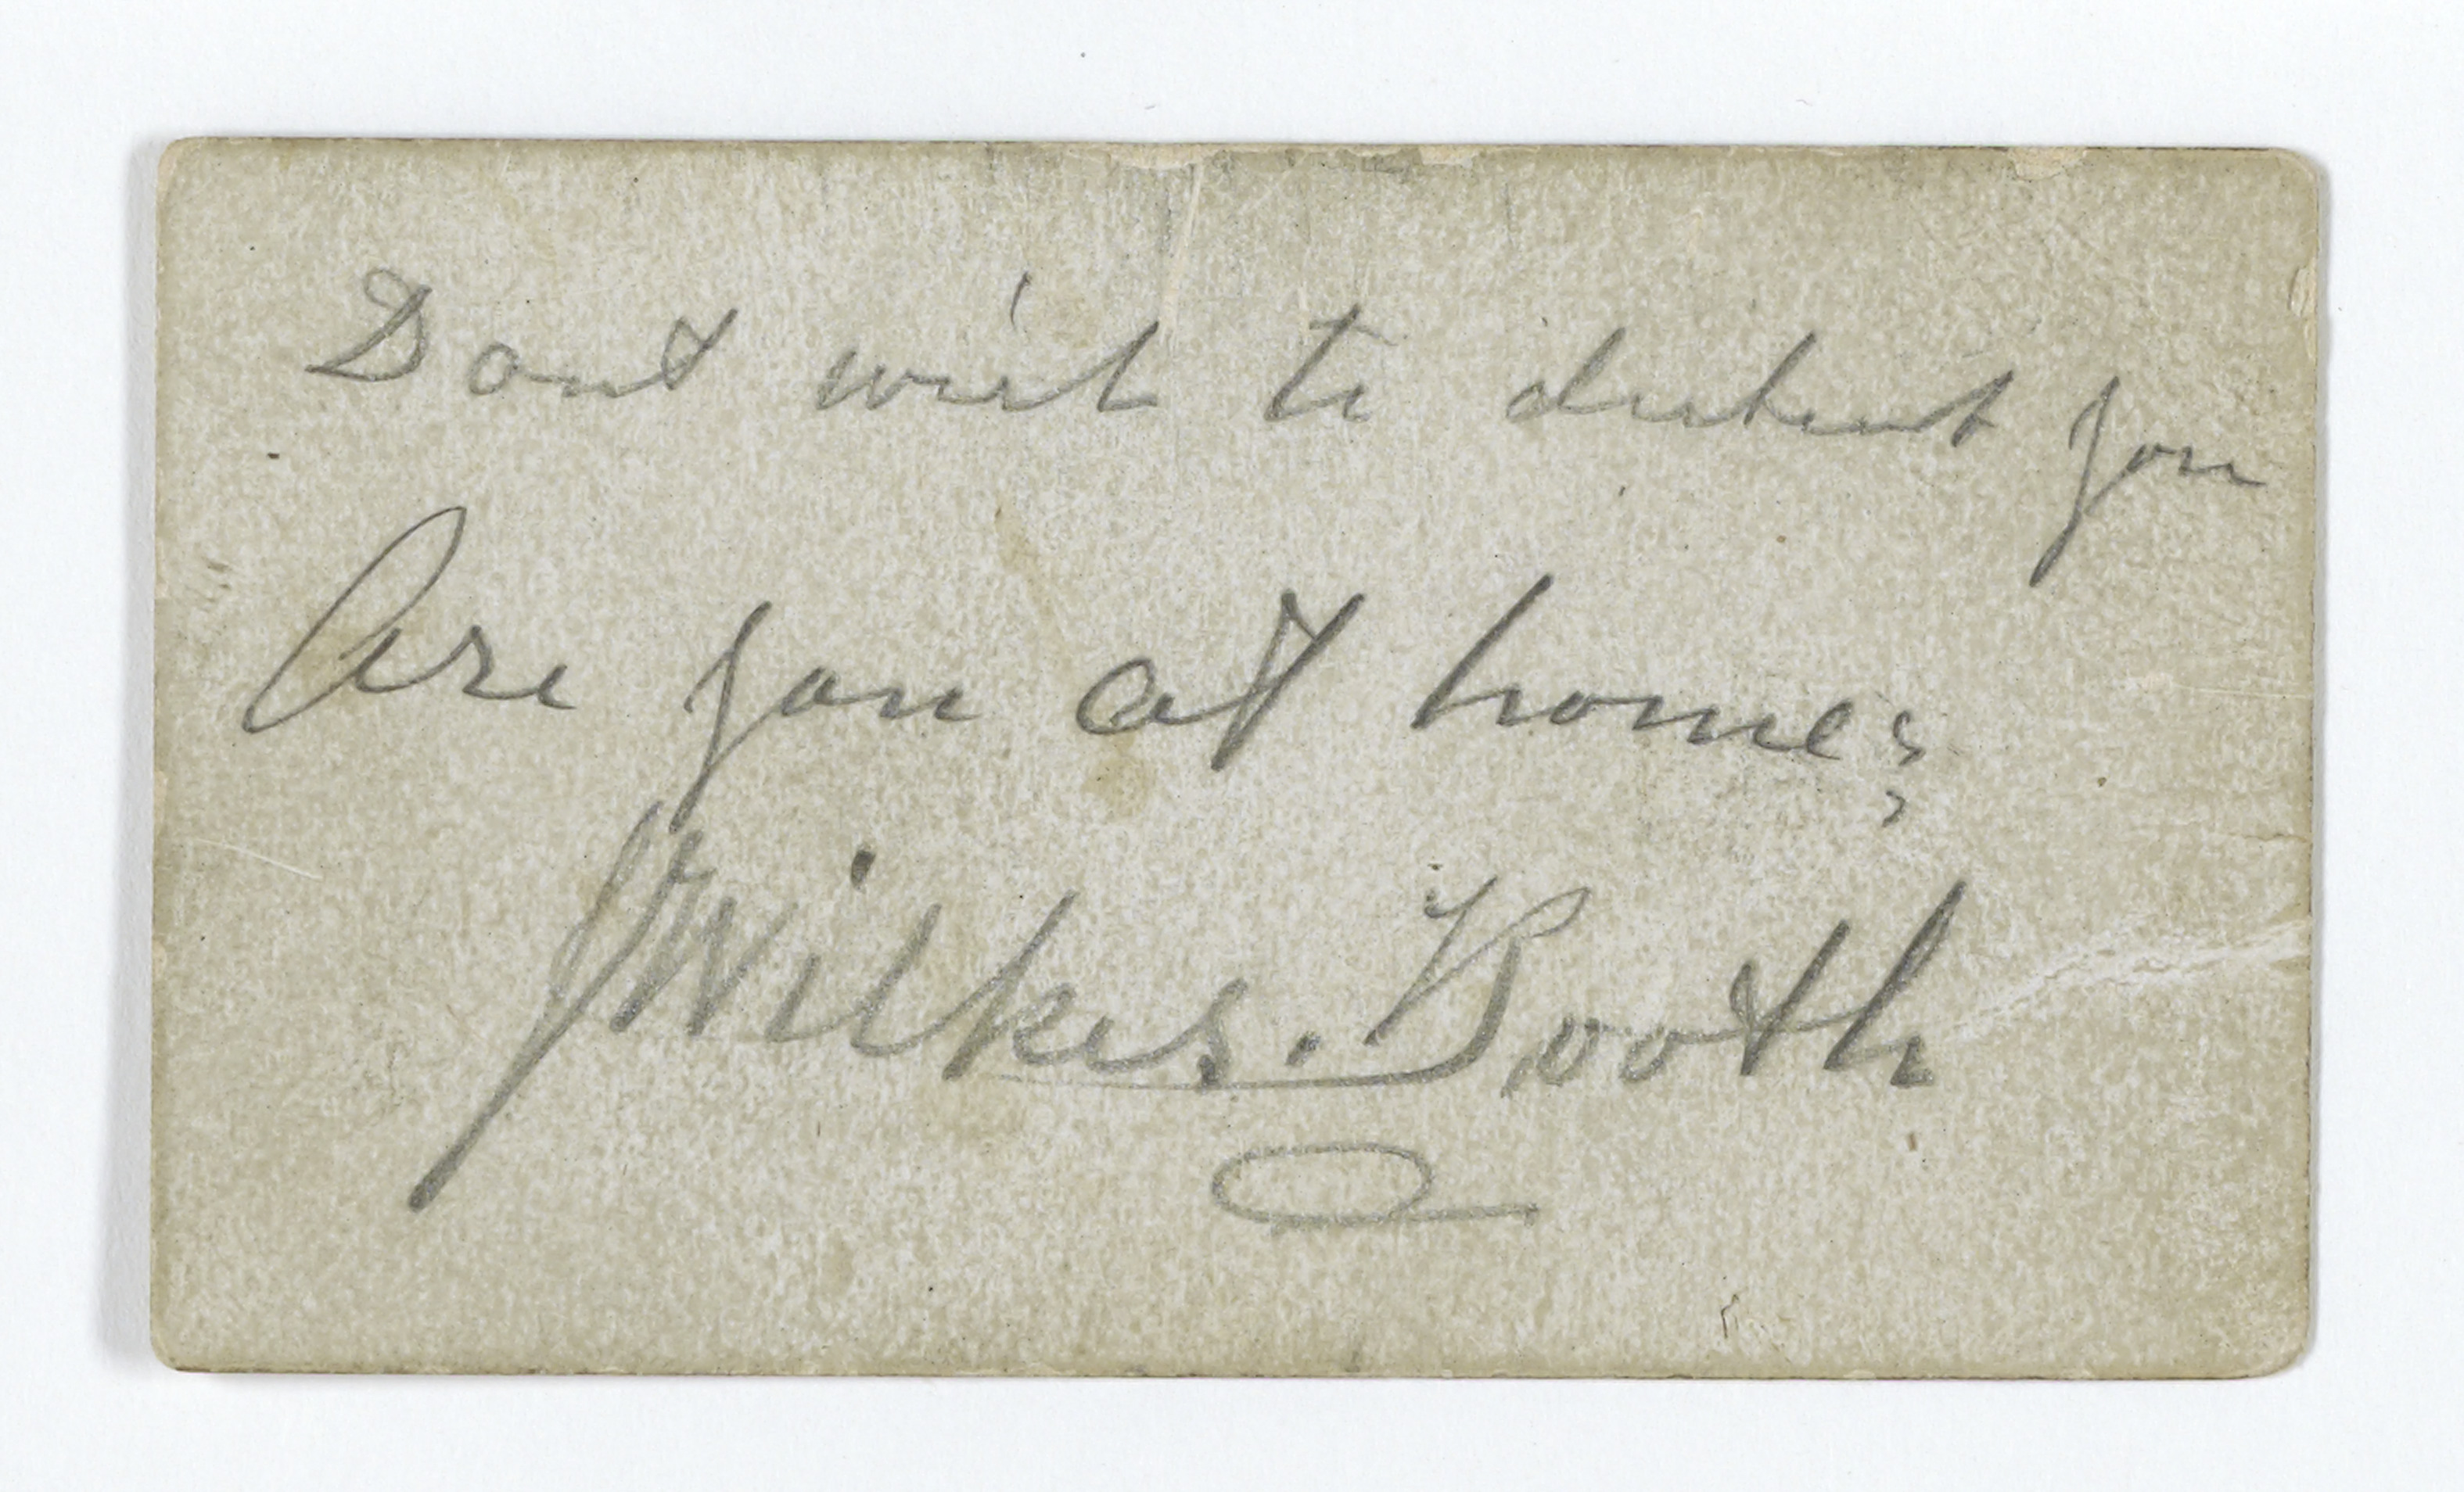 John Wilkes Booth's Calling Card, 04/14/1865. (National Archives Identifier 7873510)